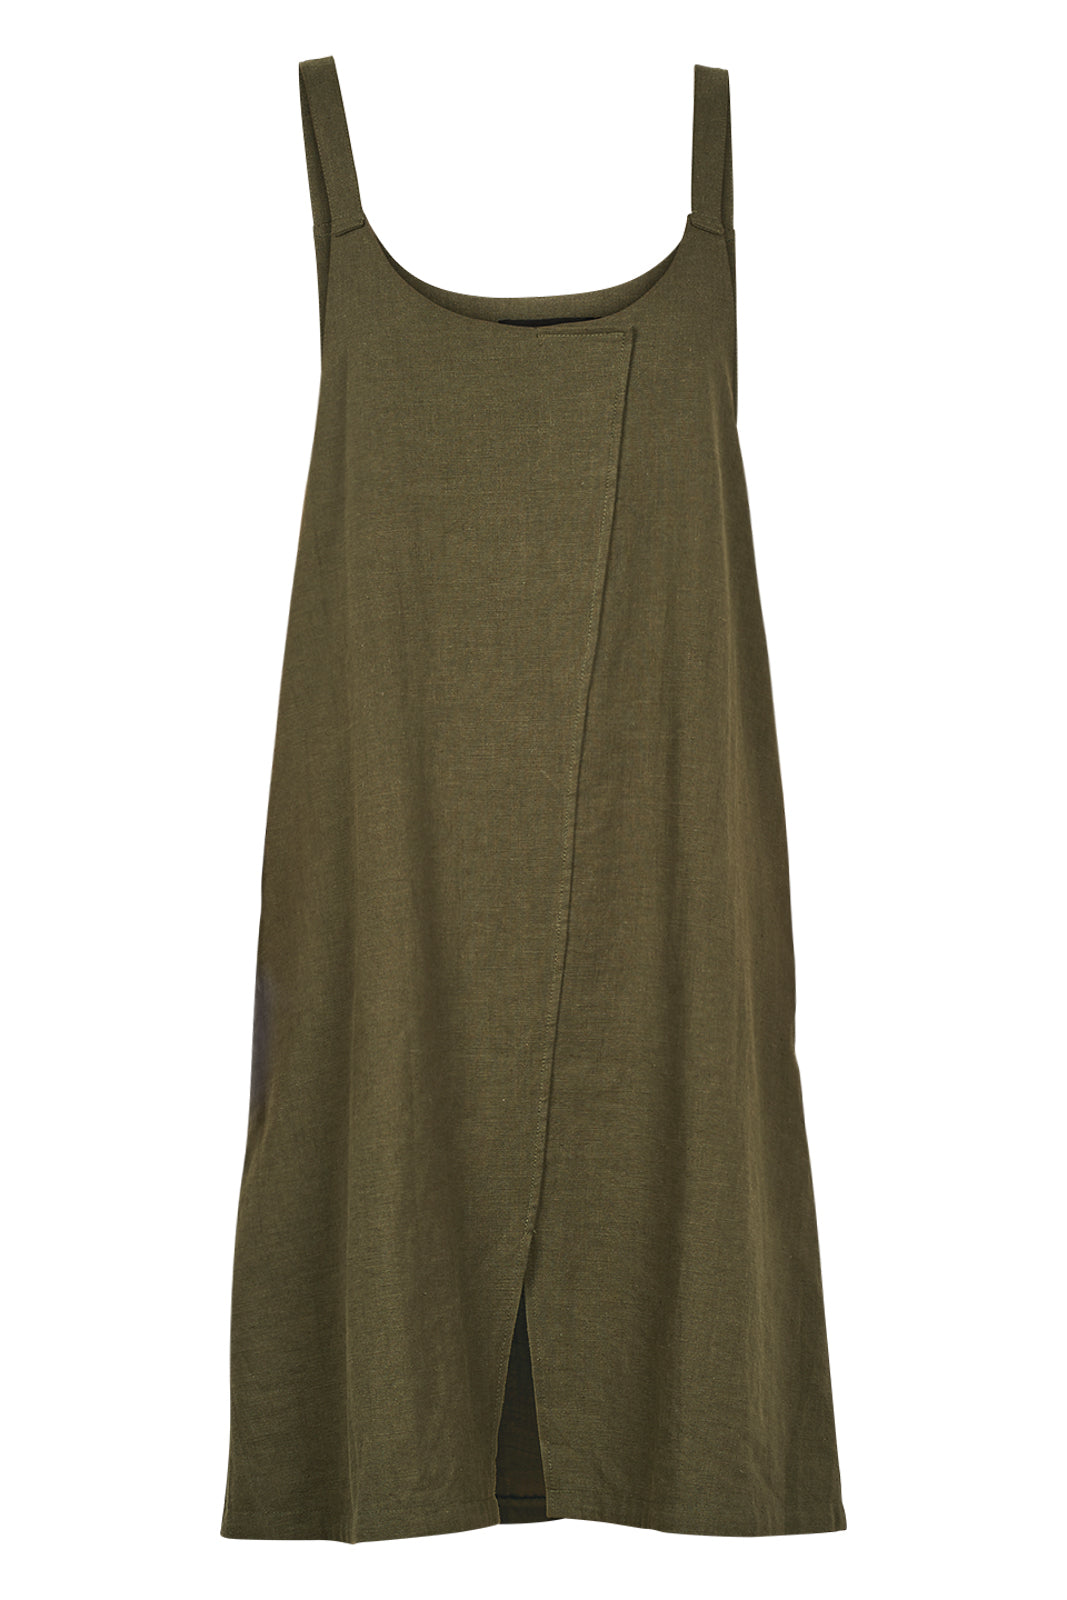 Dolores Pinafore - Moss - eb&ive Clothing - Dress Linen